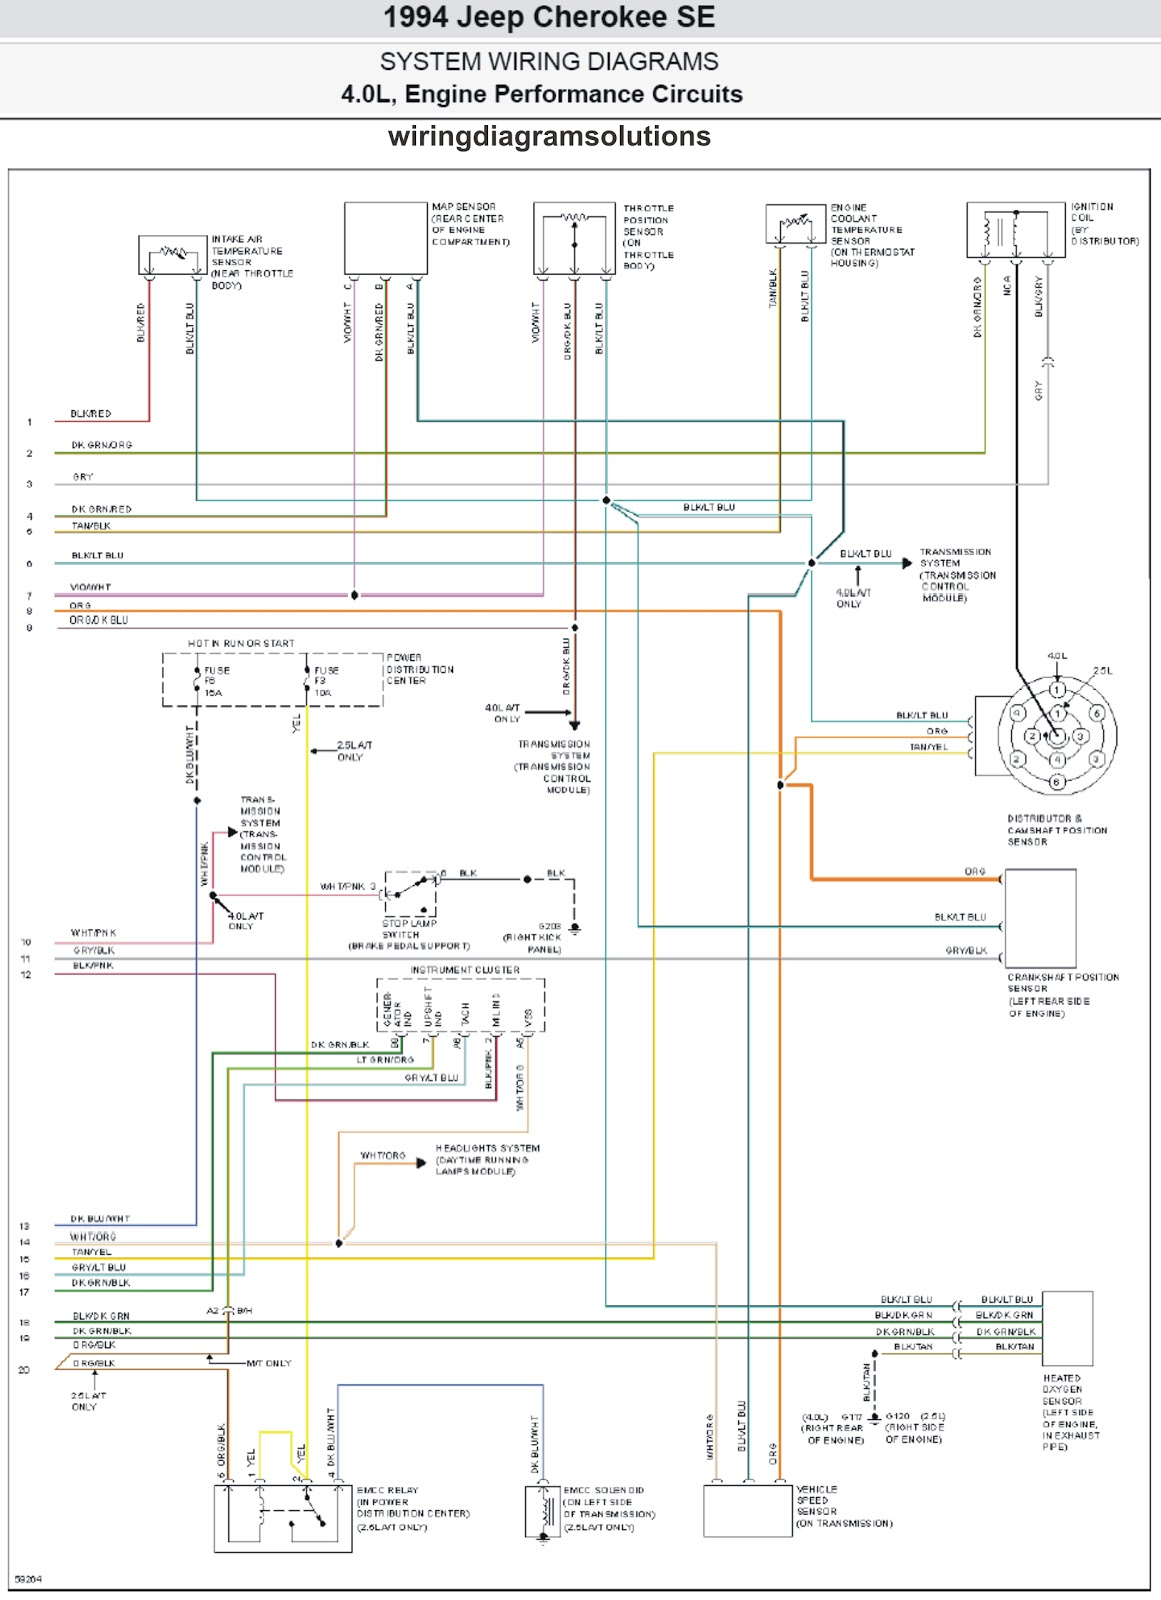 1994+Jeep+Cherokee+SE_2 2005 grand cherokee wiring diagram 2005 free wiring diagrams  at panicattacktreatment.co